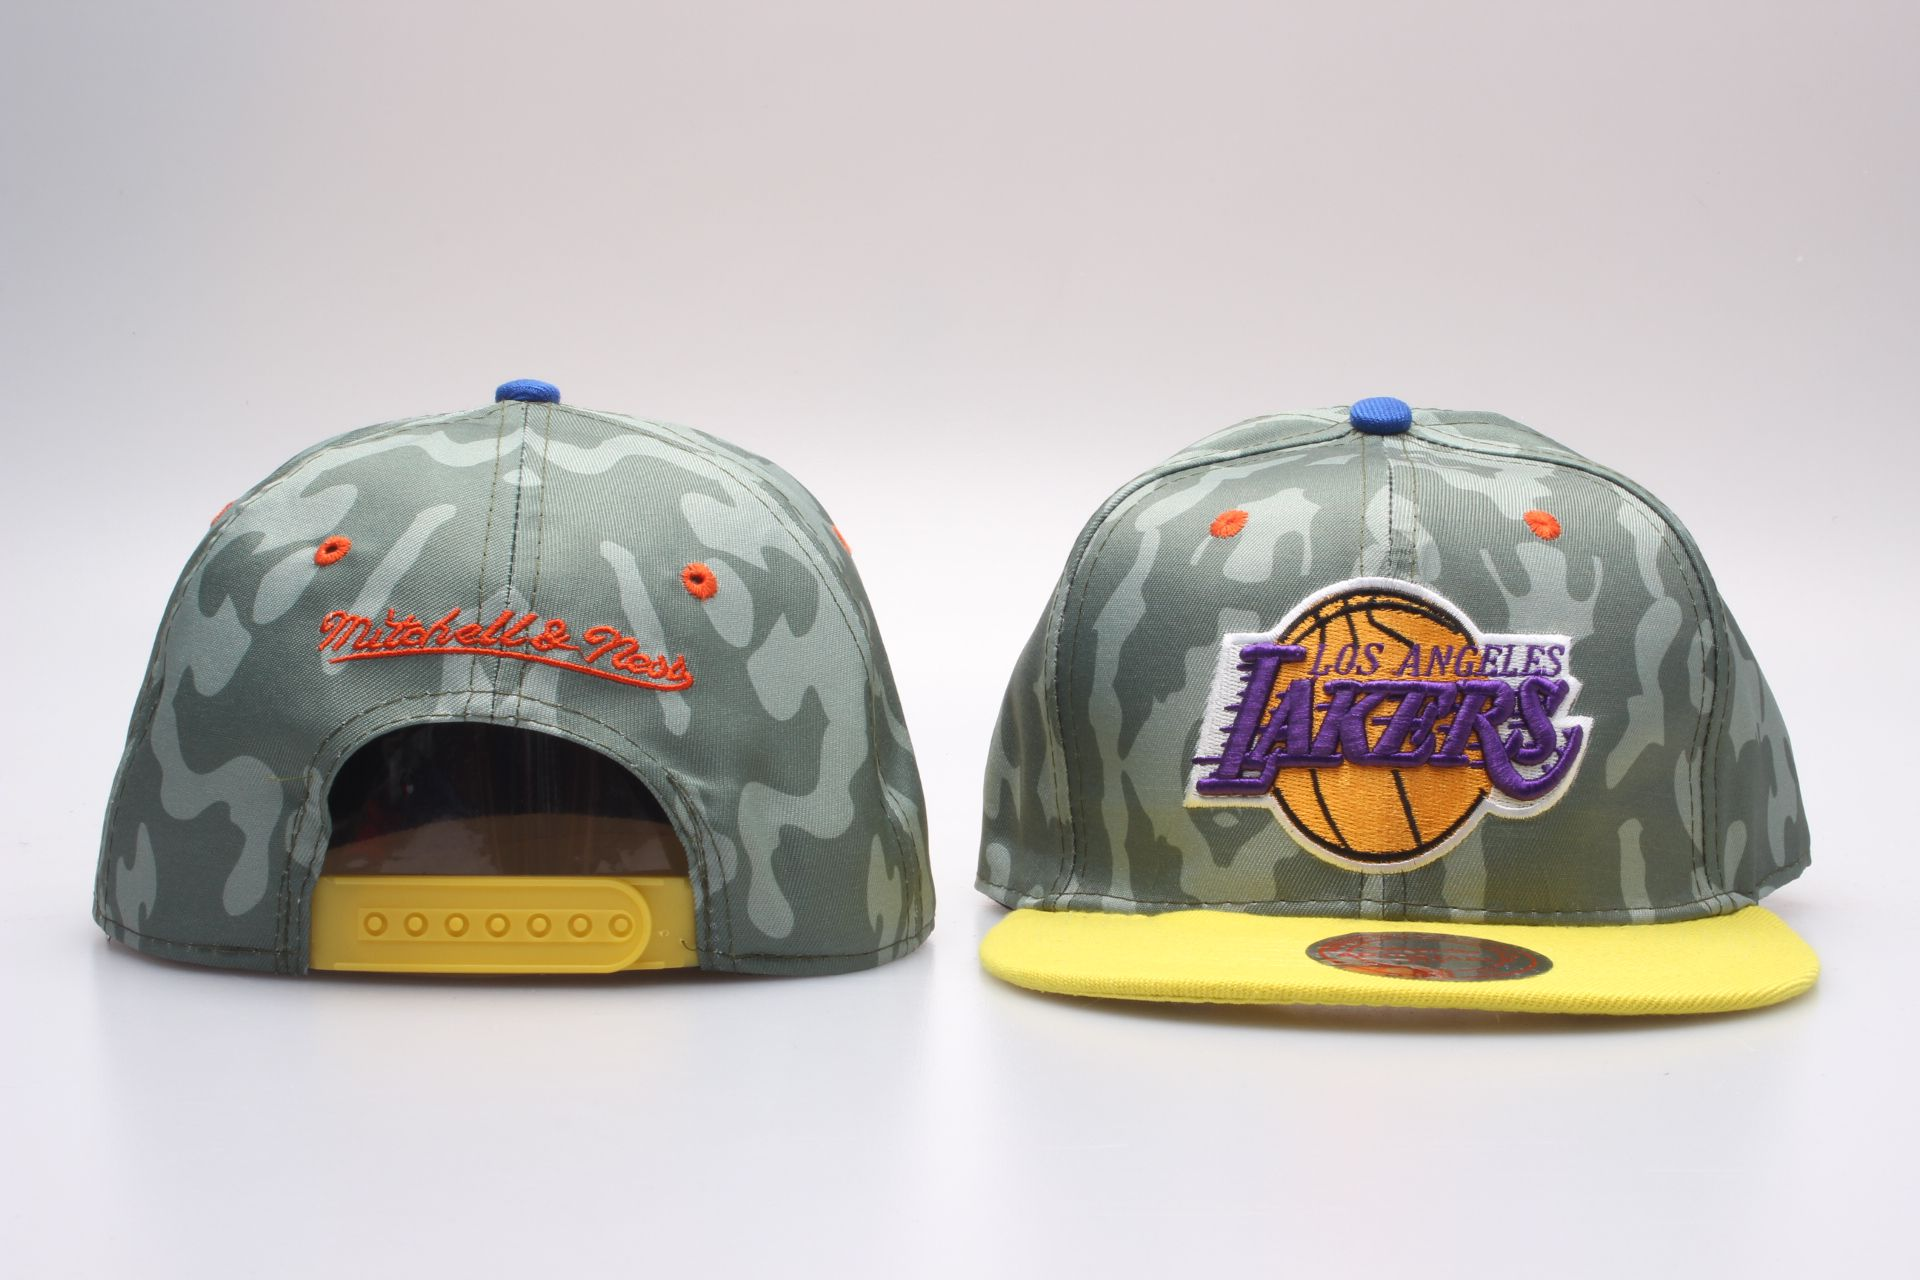 NBA Los Angeles Lakers Snapback hat 201811253